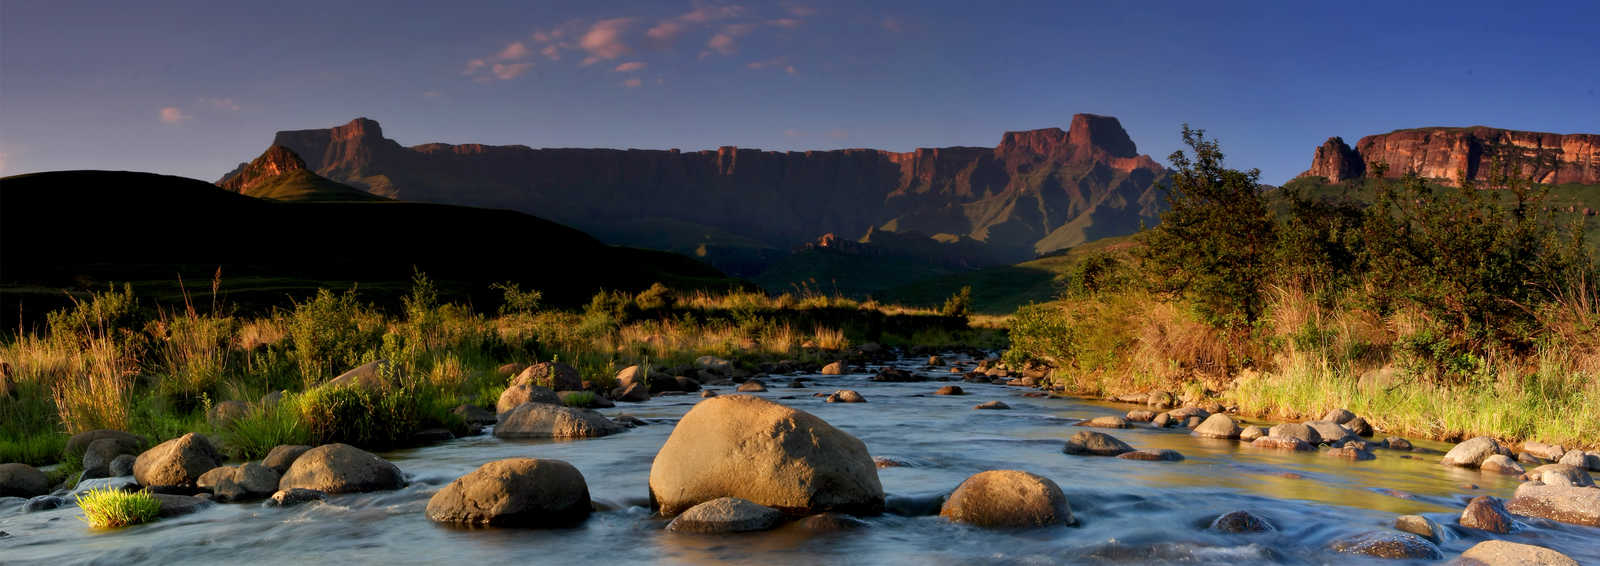 River and mountain, South Africa